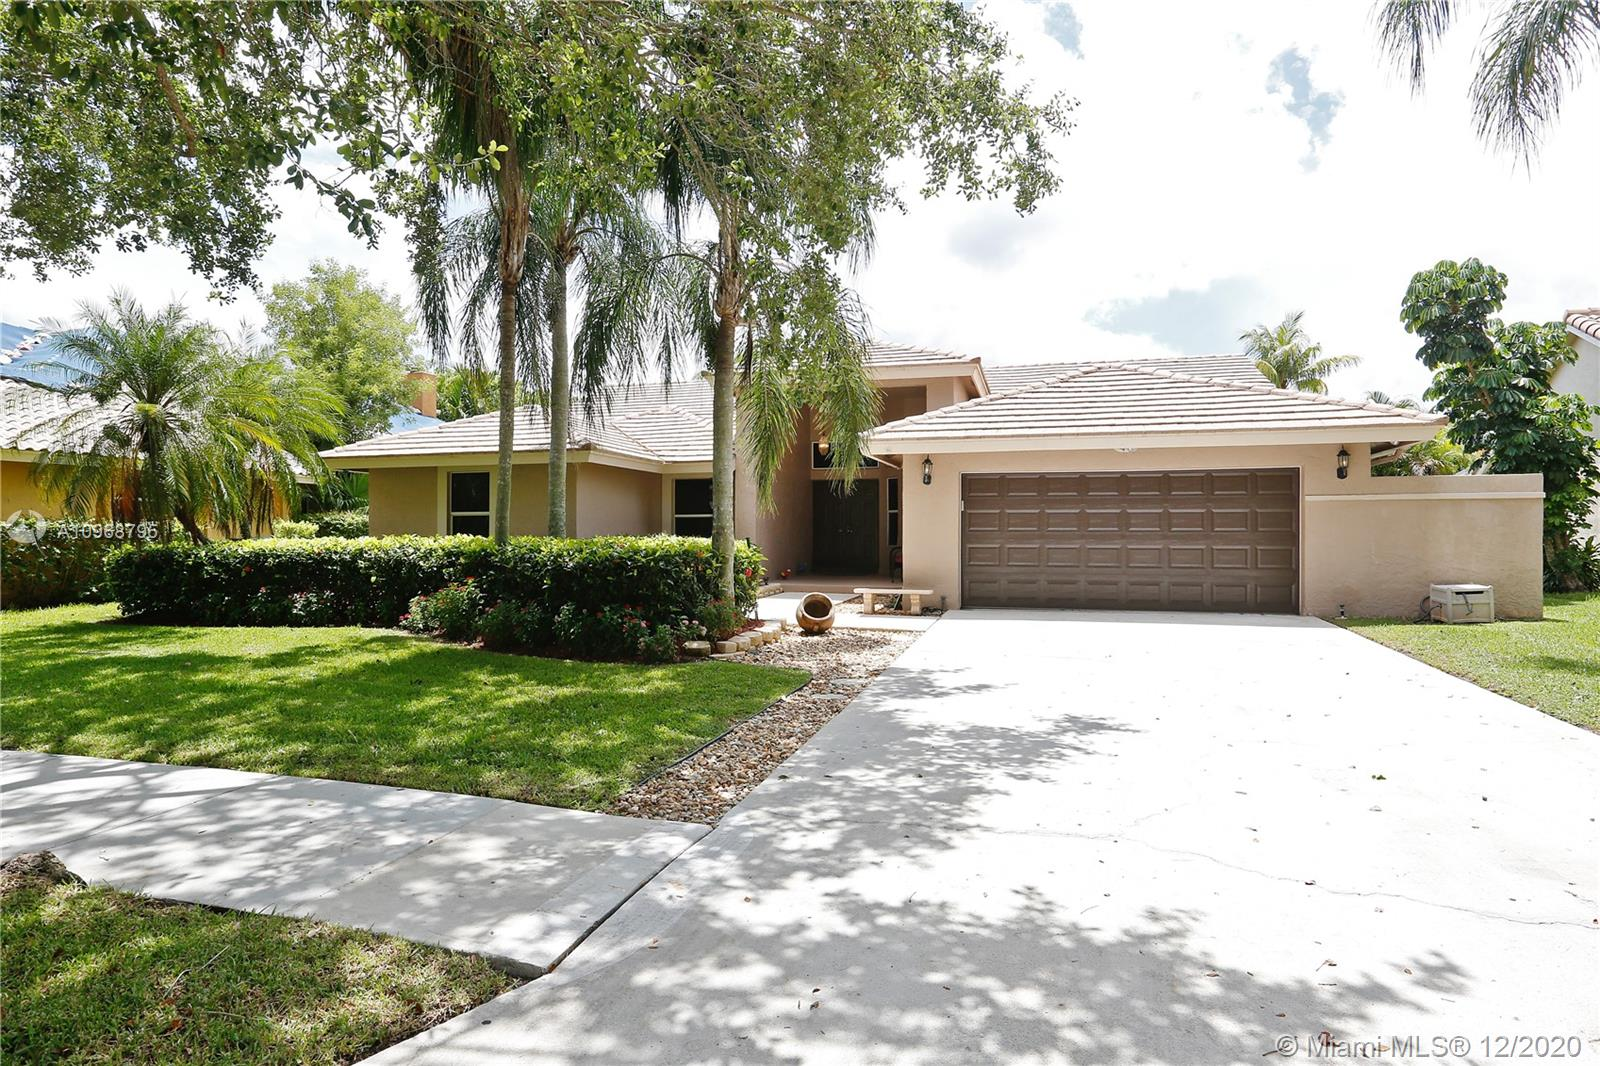 This is a Gorgeous home located in Sunset Springs, one the most desired communities in weston, perfect for the family . It has Gorgeous Tiled Floors in all Living Areas & Laminated Hardwood Floors in all the Bedrooms. The Kitchen has Updated Wood Cabinets with oversized Granite Countertops, Newly Upgraded Stainless Steel Appliances, and A Breakfast Nook that looks over the pool and private water frontage.The house lastly has an office in the garage that easy can be converted back to the garage /soaring ceiling fans in all the room/Upgraded window treatments/and a Huge screen patio with an oversize barbeque area. The Community has a Tennis Court, a playground,and a Security Guard Gate. The house is walking distance to A+++ grade schools, Publix, restaurants, shopping, and parks.